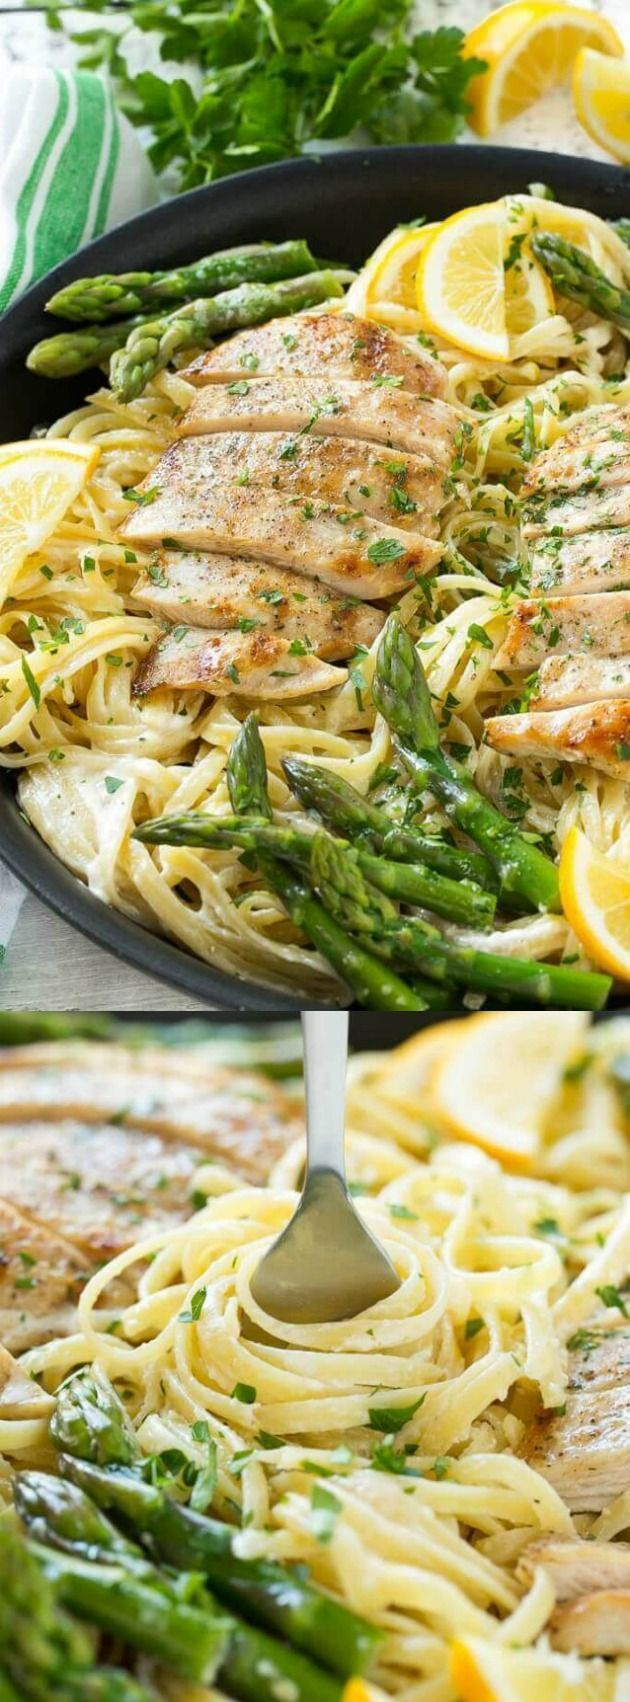 This recipe for Lemon Asparagus Pasta with Grilled Chicken from Dinner at the Zoo combines tender asparagus and grilled chicken with pasta in the most delicious lemon cream sauce!